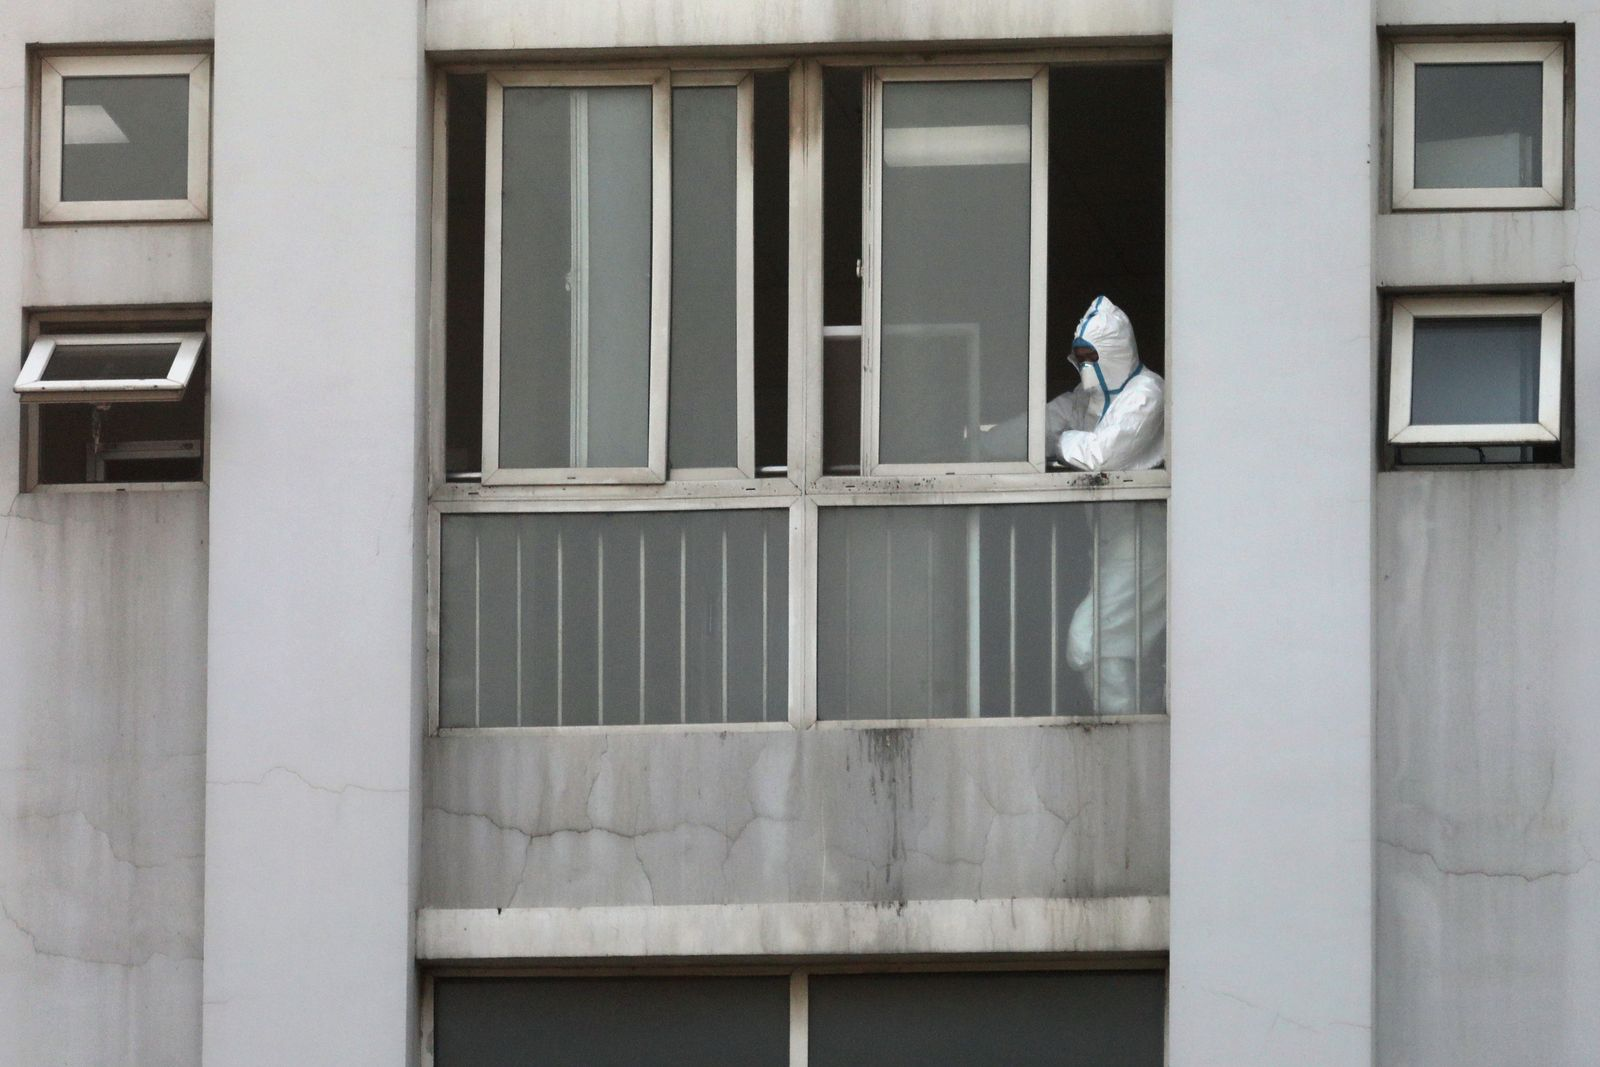 A medical staff is seen by a window at the Jinyintan hospital, where the patients with pneumonia caused by the new strain of coronavirus are being treated, in Wuhan